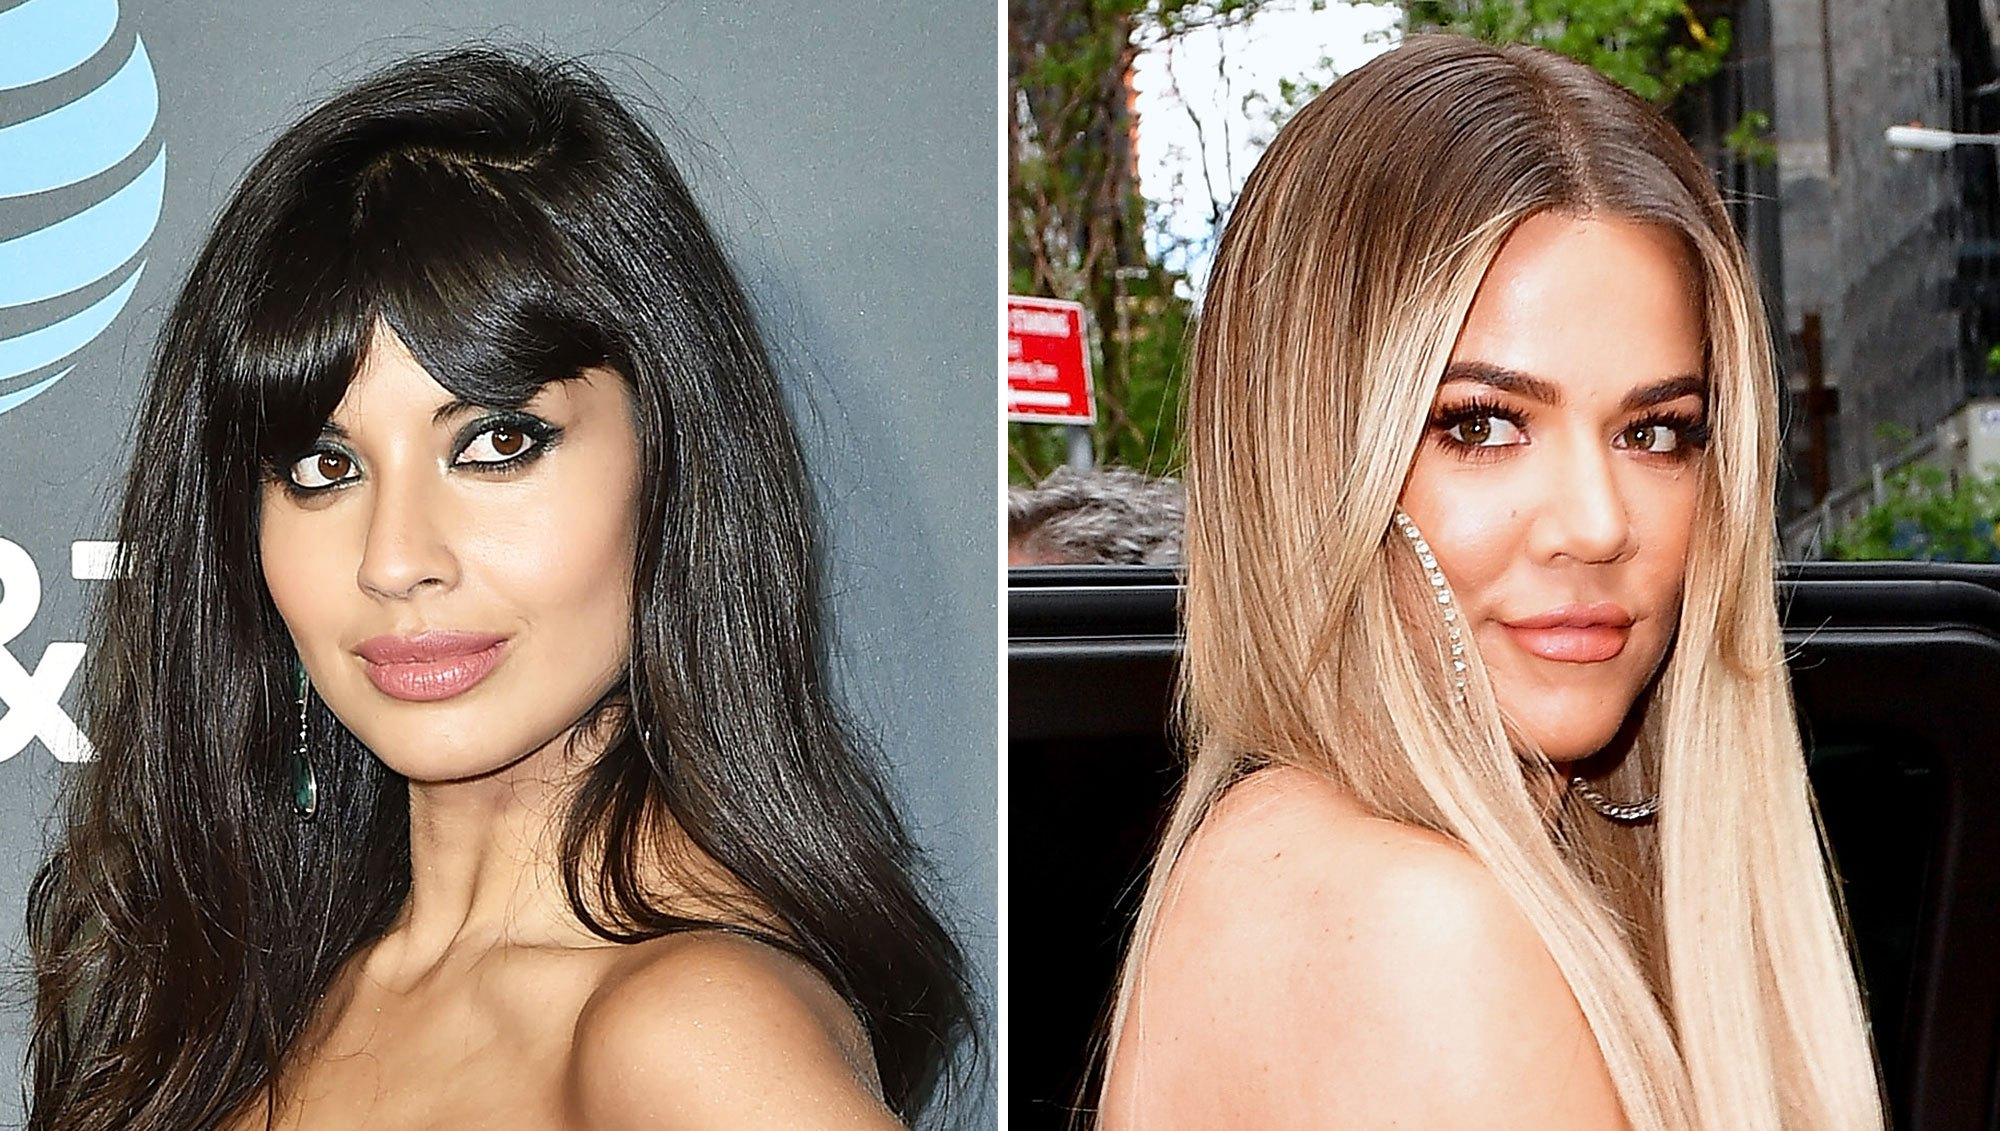 Jameela Jamil Slams Khloe Kardashian Meal Replacement Shakes